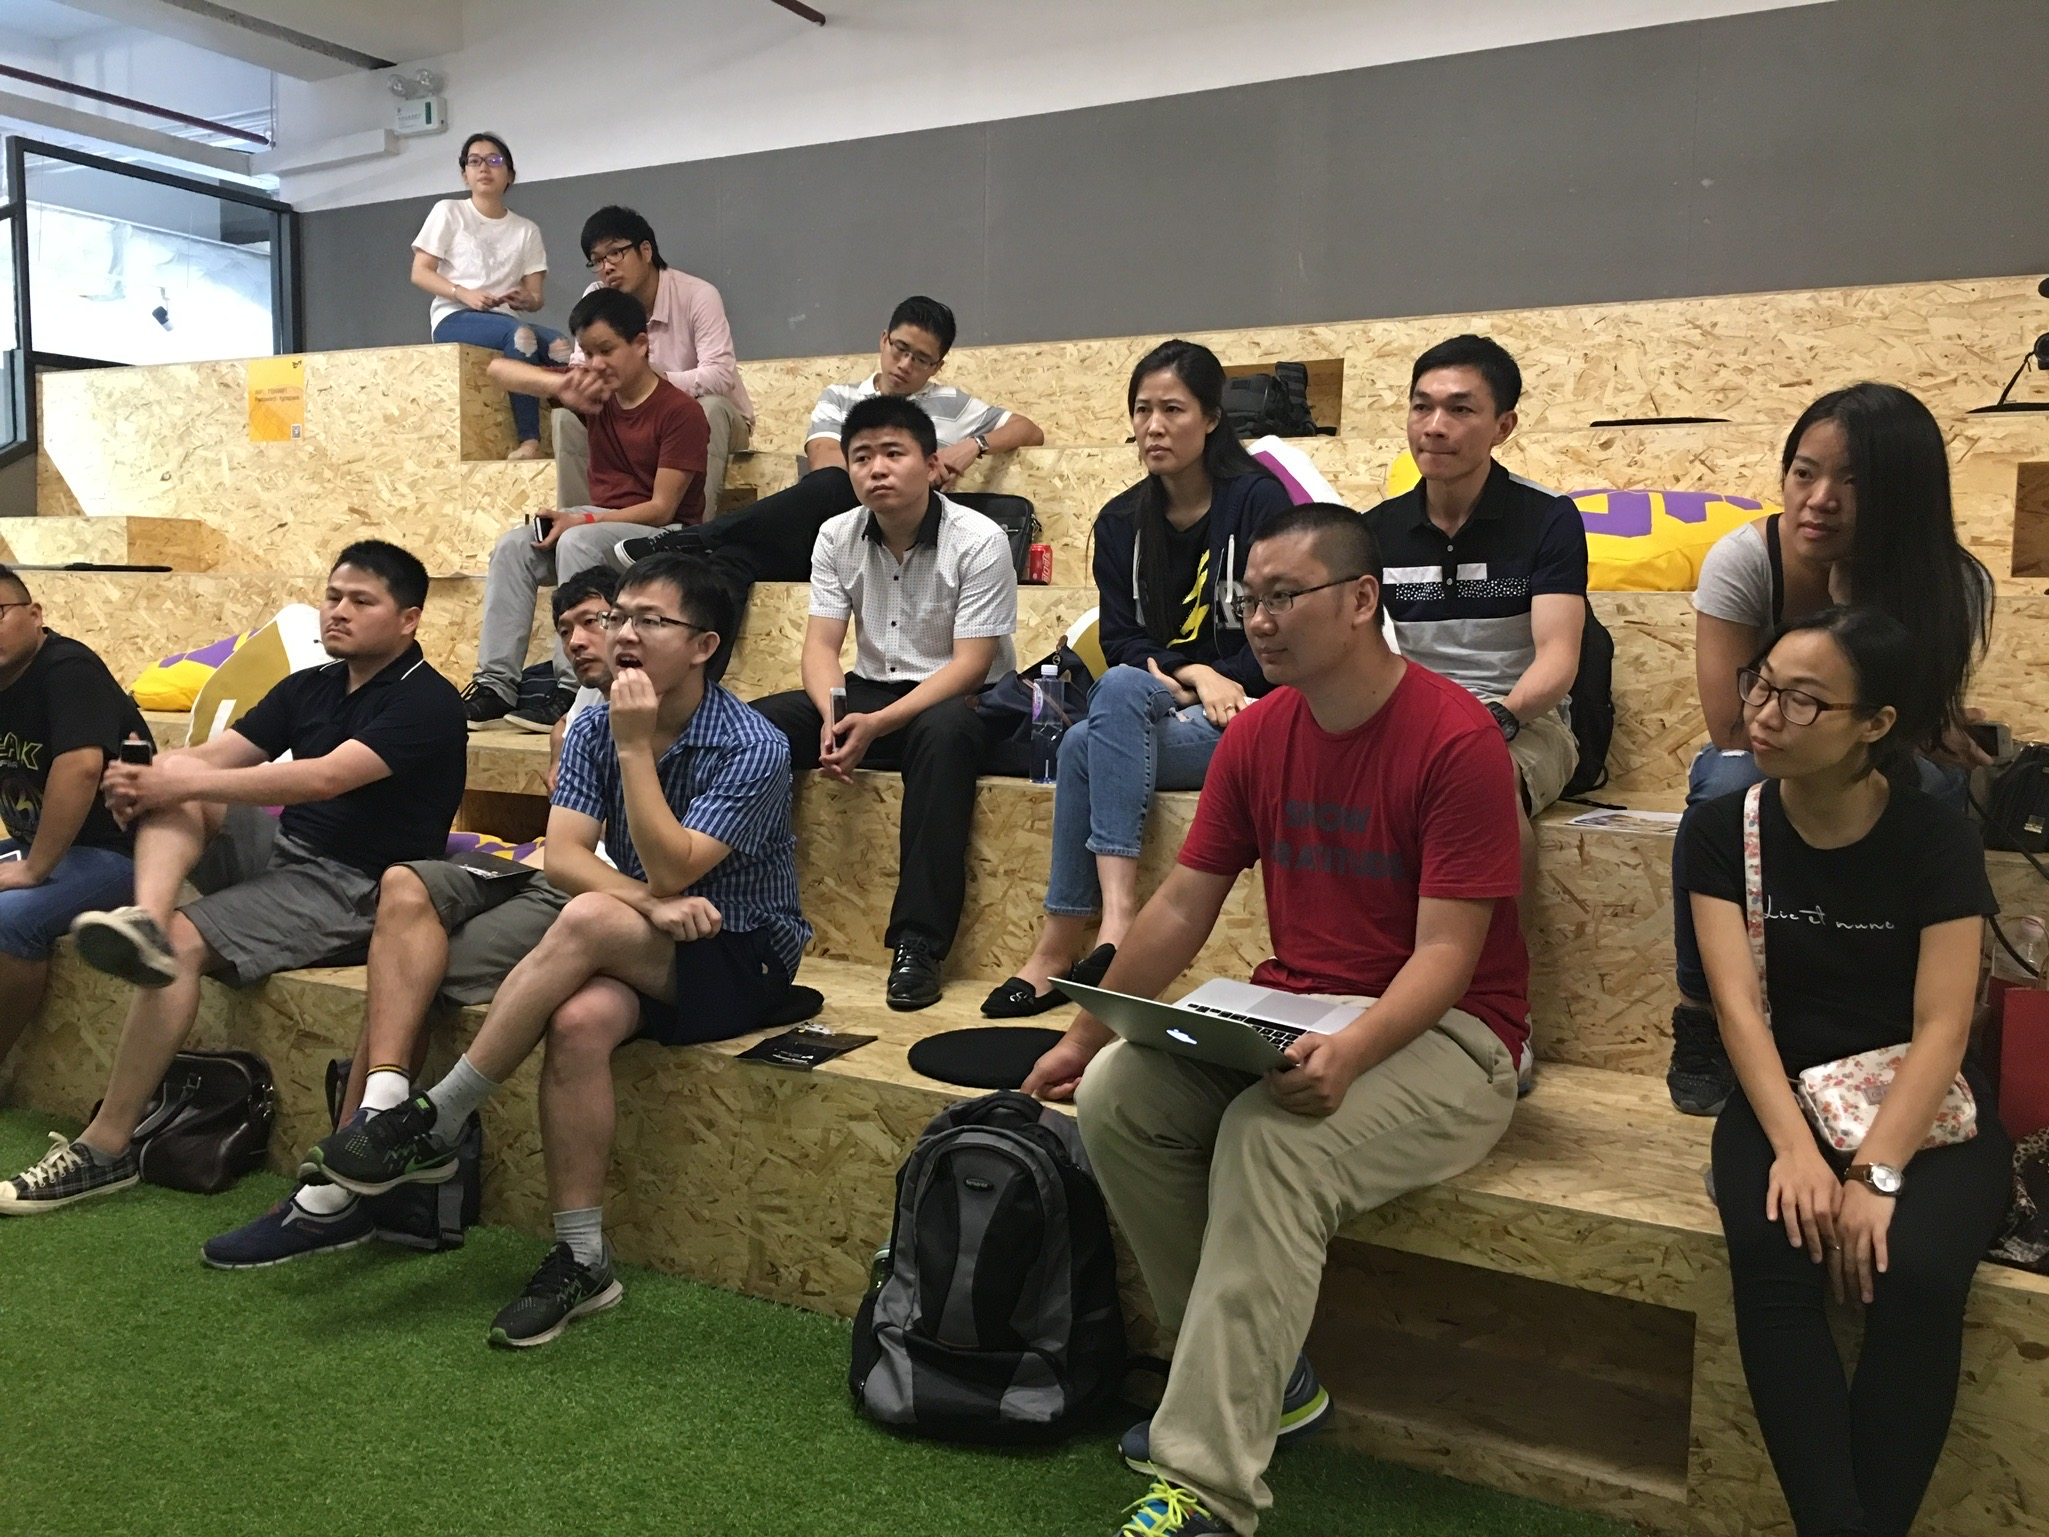 First Blockstack Meetup in Shenzhen.